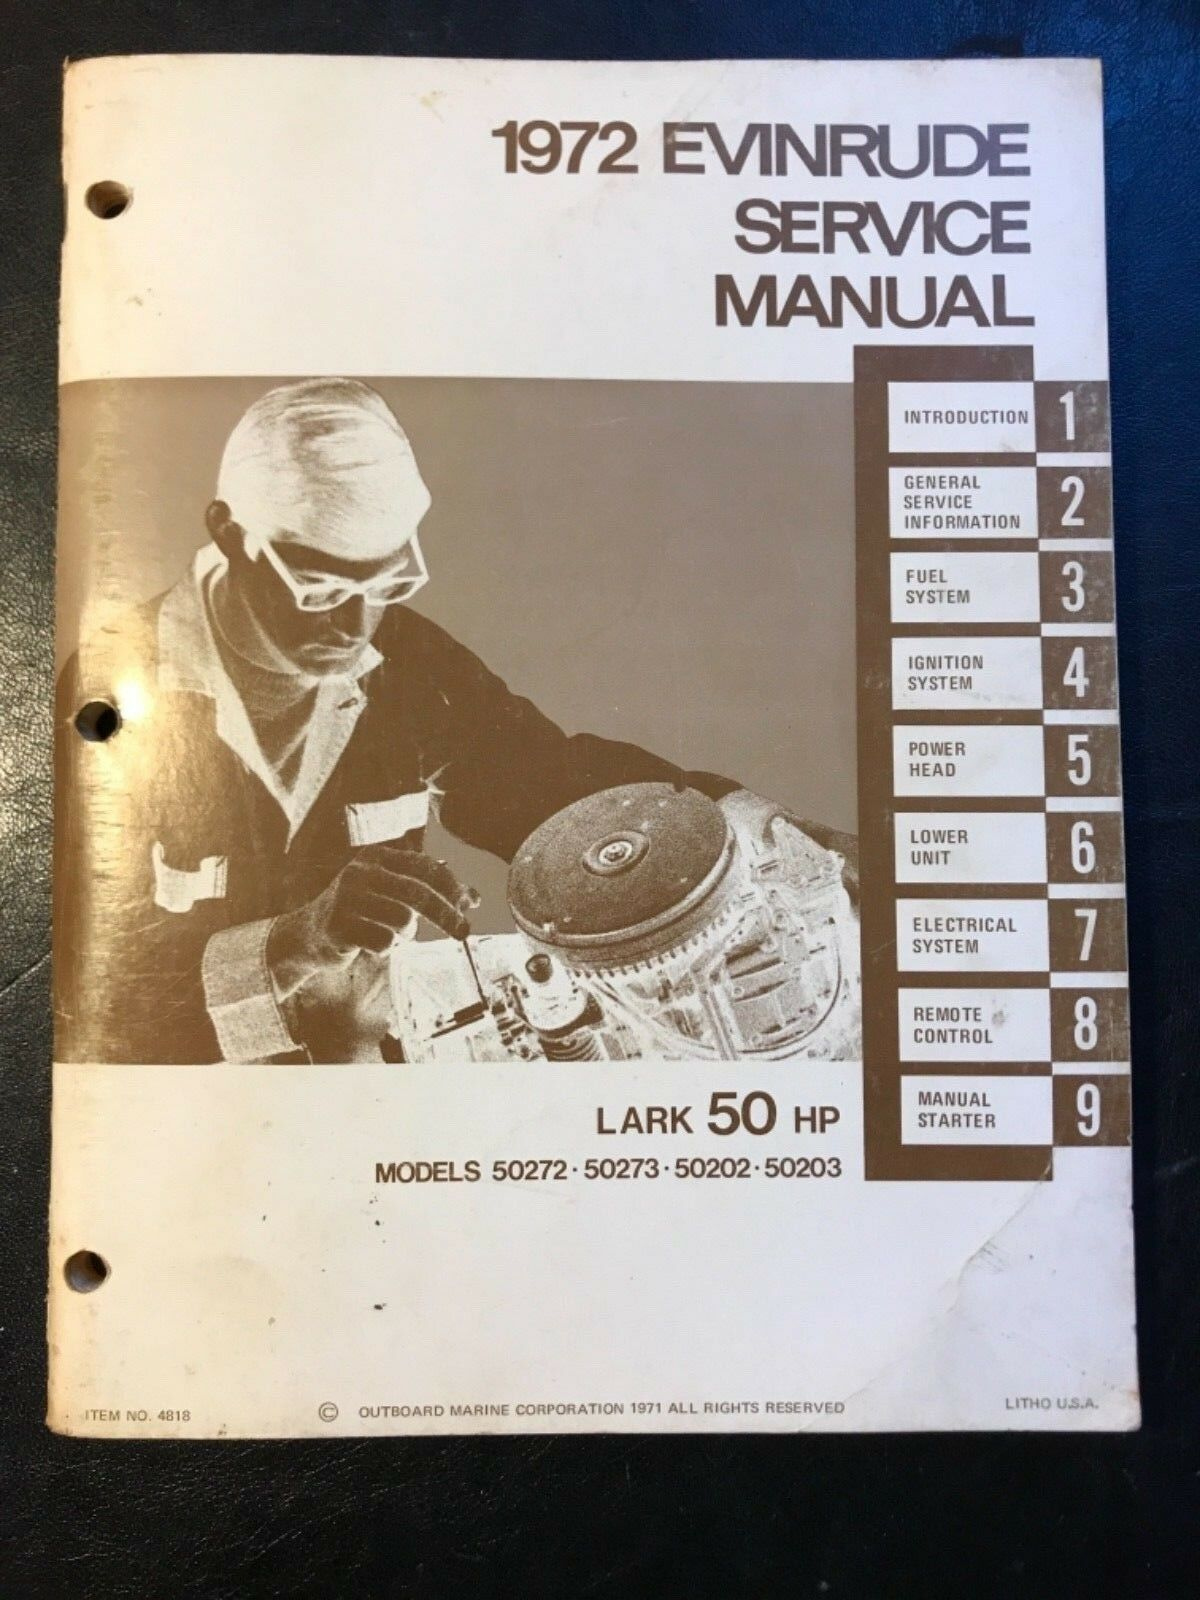 1972 Evinrude 100 Hp Wiring Diagram Together With 1972 50 Hp Evinrude